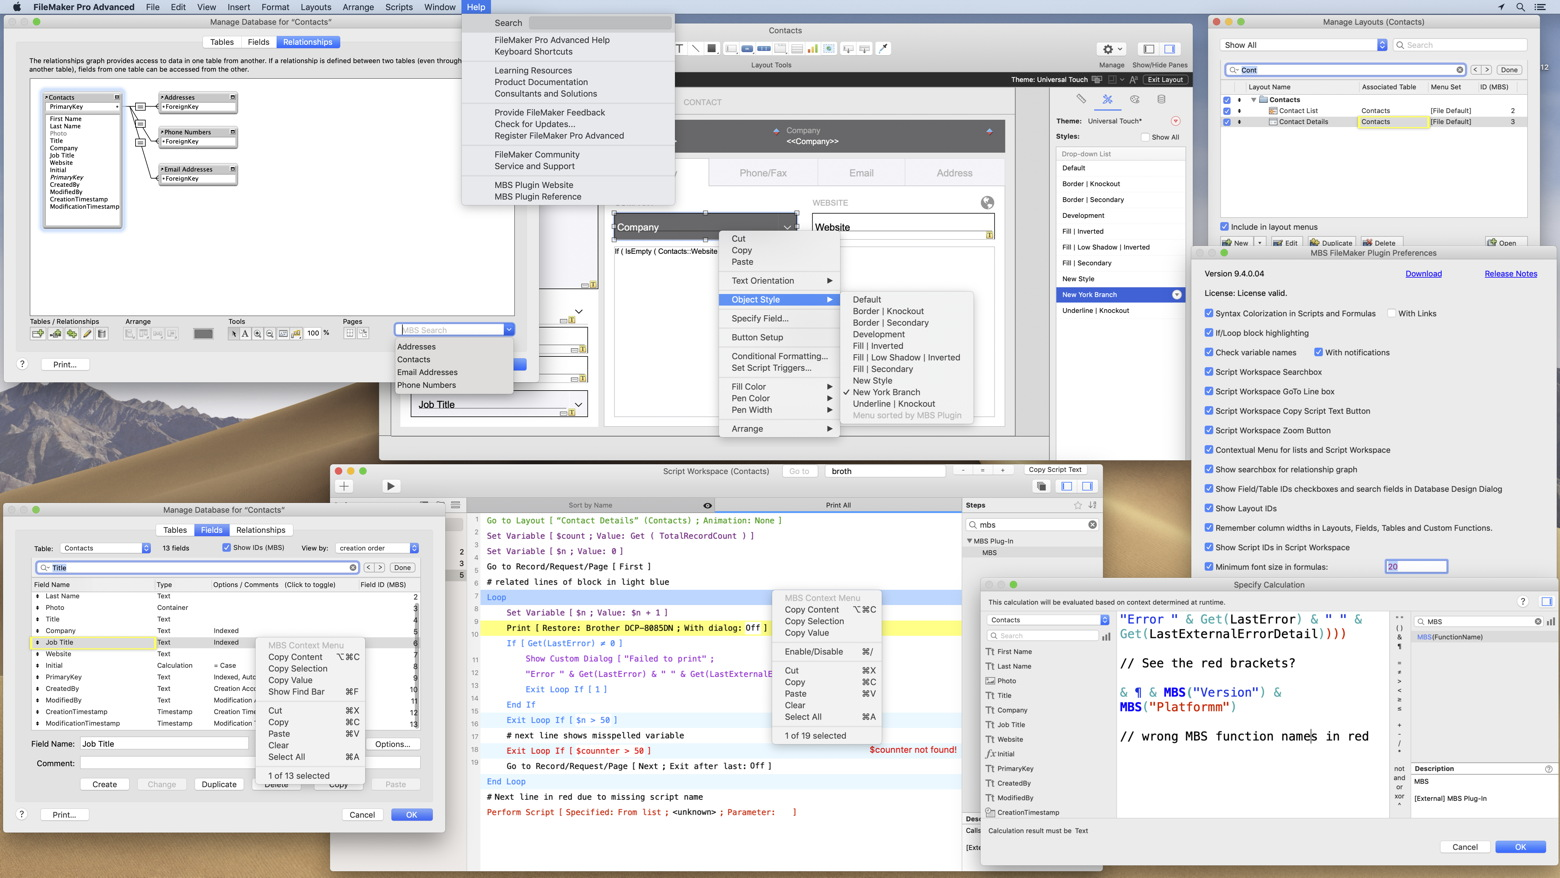 Filemaker Pro Courses monkeybread software - mbs filemaker plugin - syntax coloring